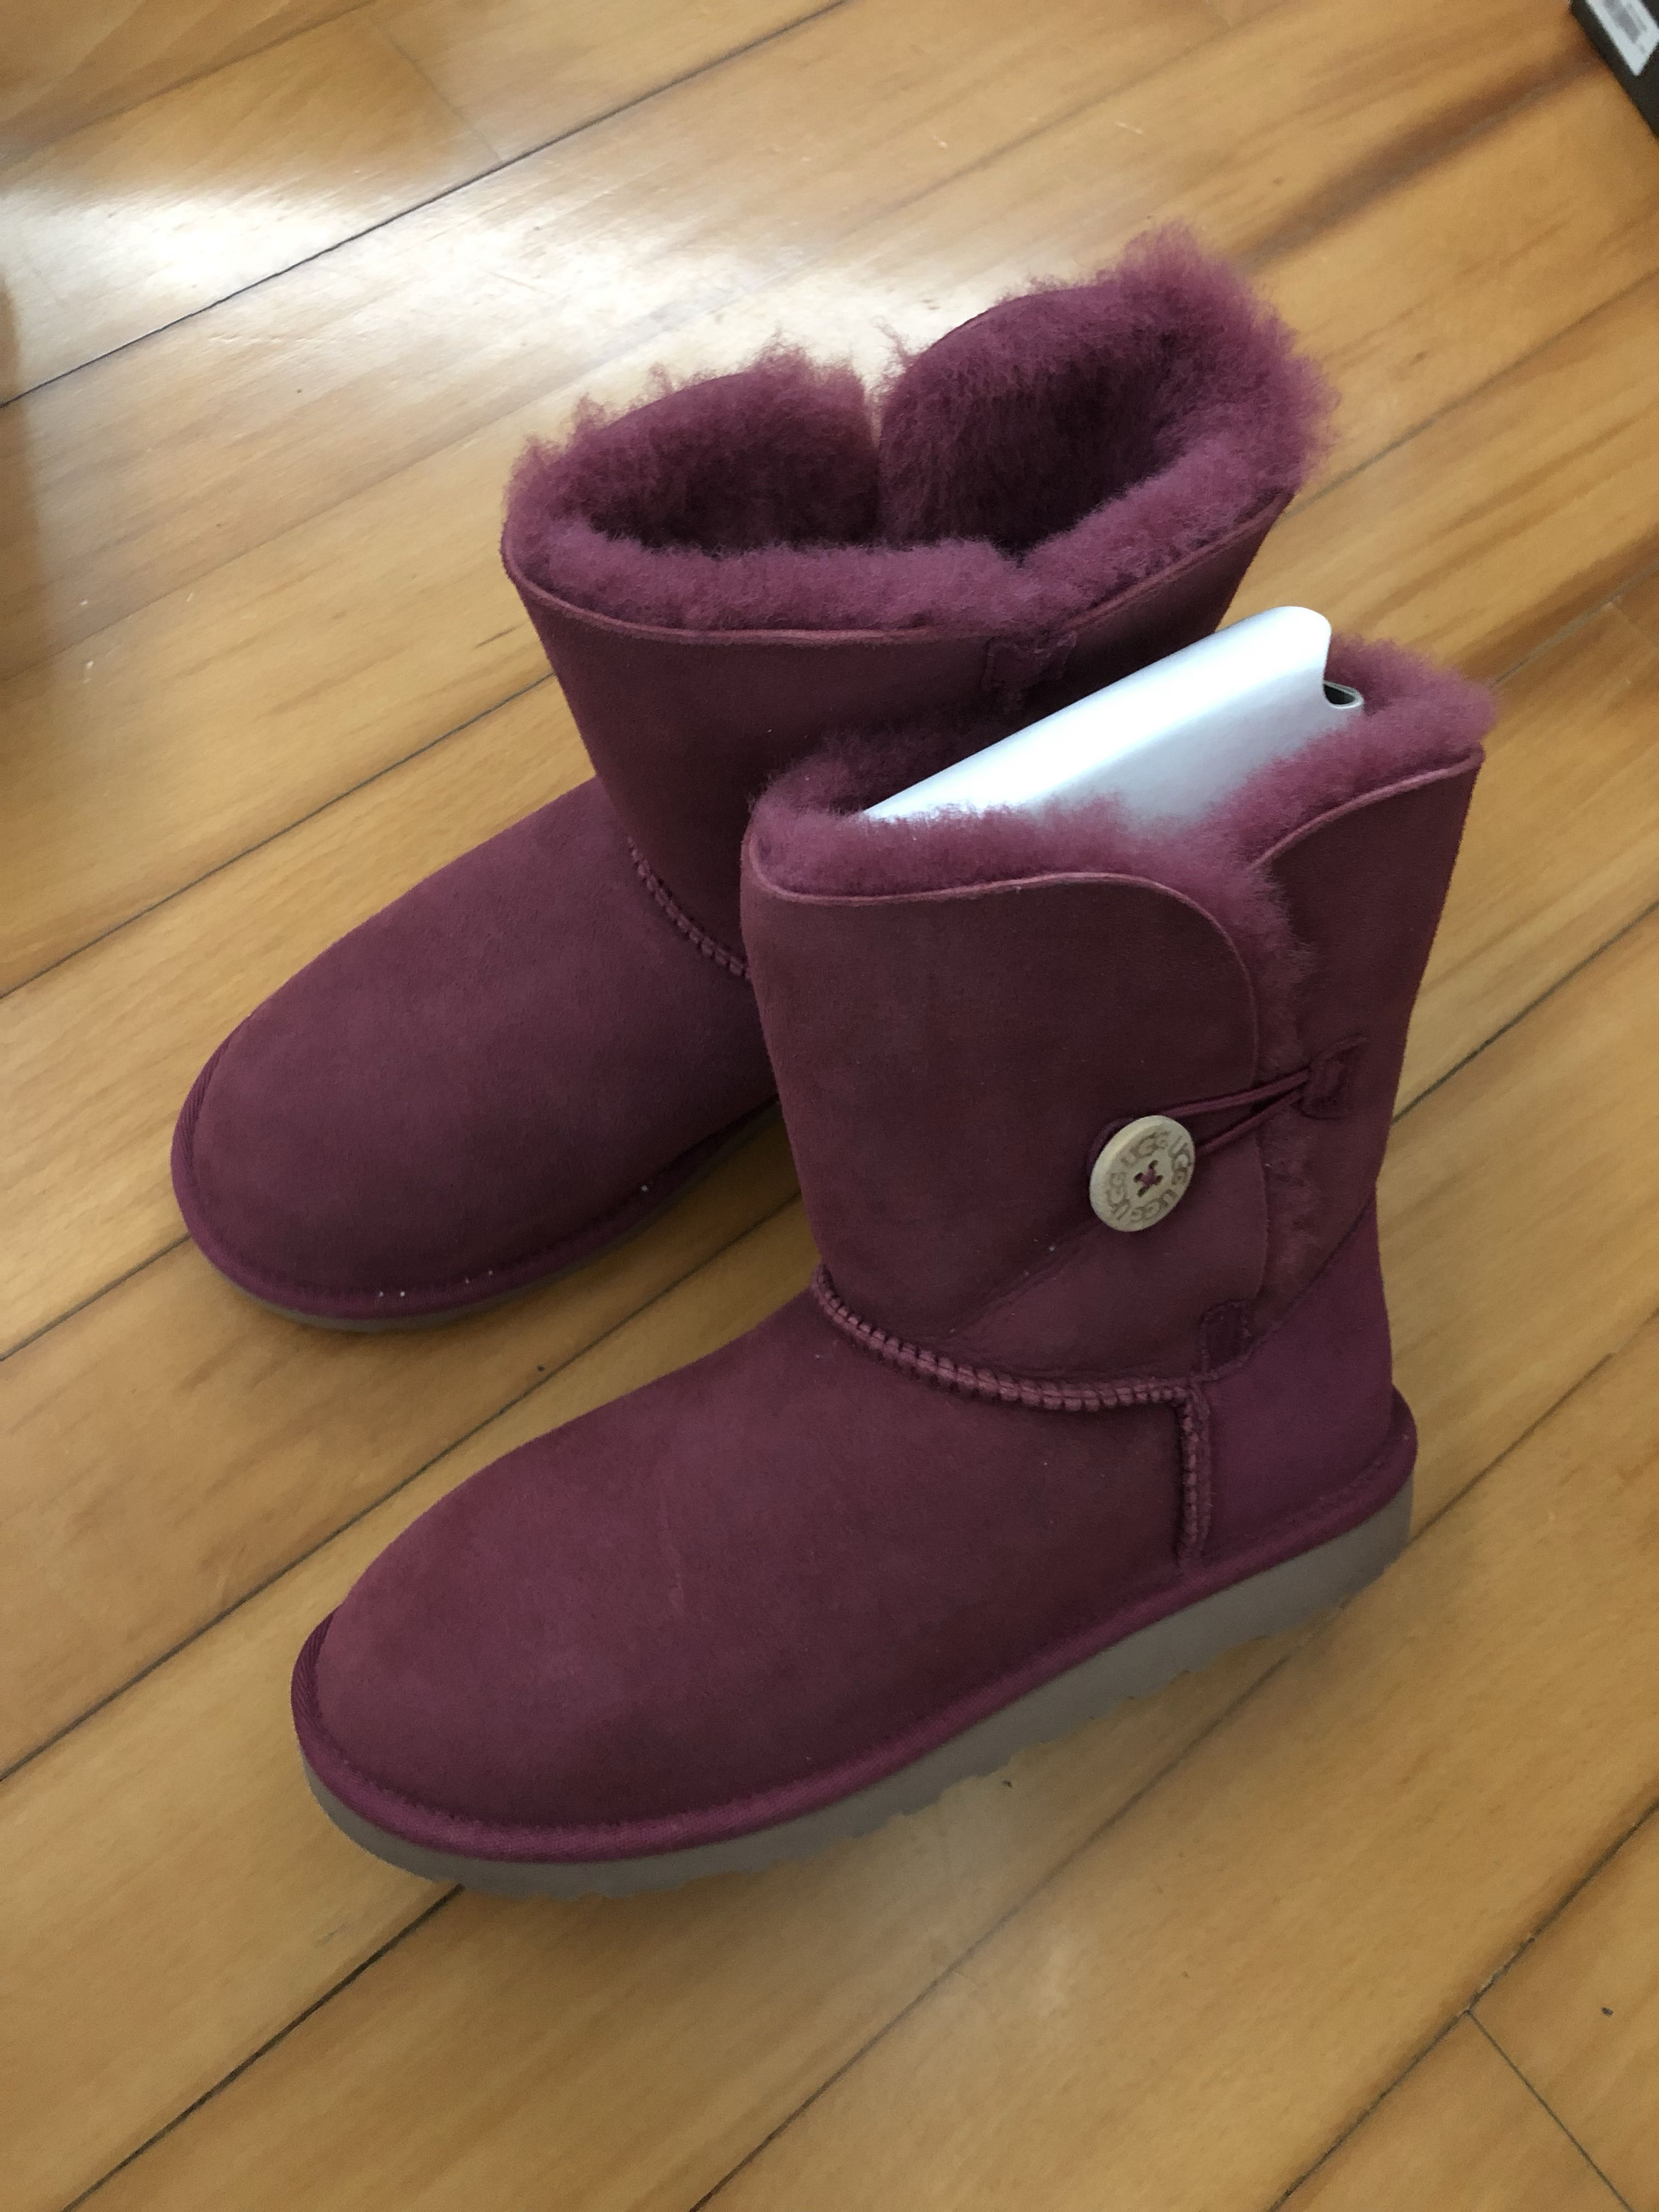 1583d2aa5b7 UGG snow boots in purple pink in UK3